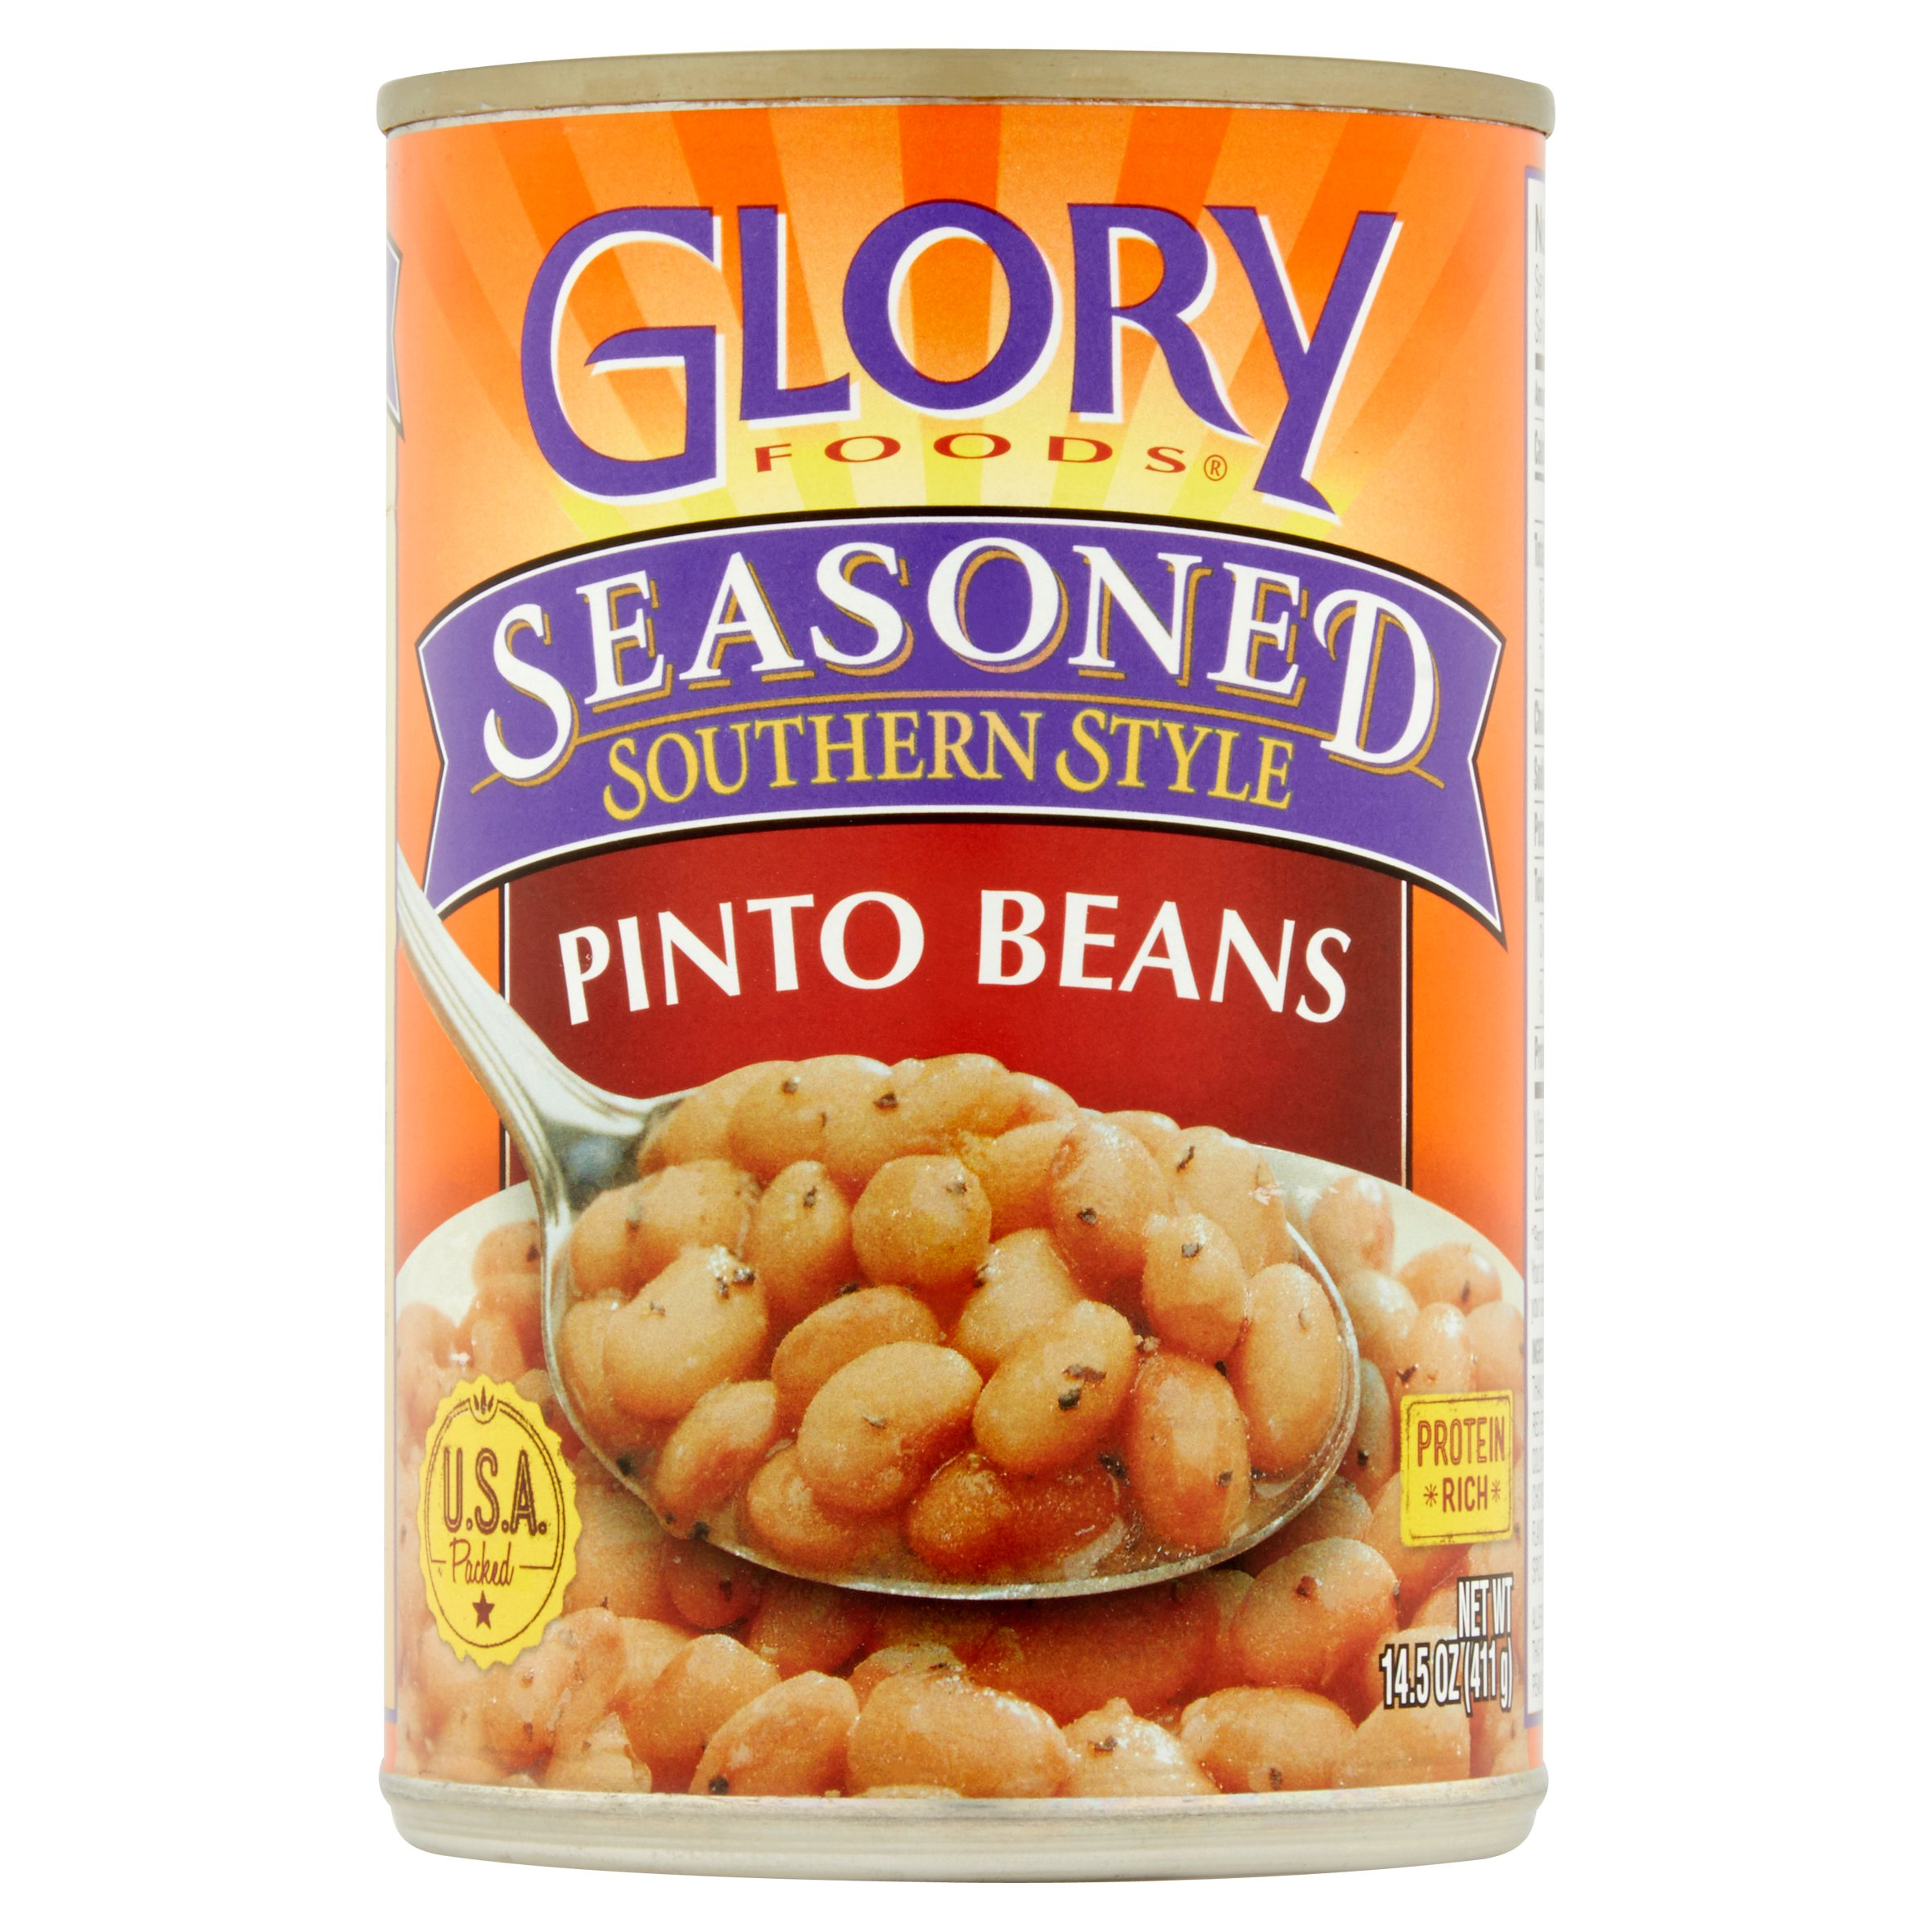 Glory Foods Seasoned Southern Style Pinto Beans, 14.5 oz